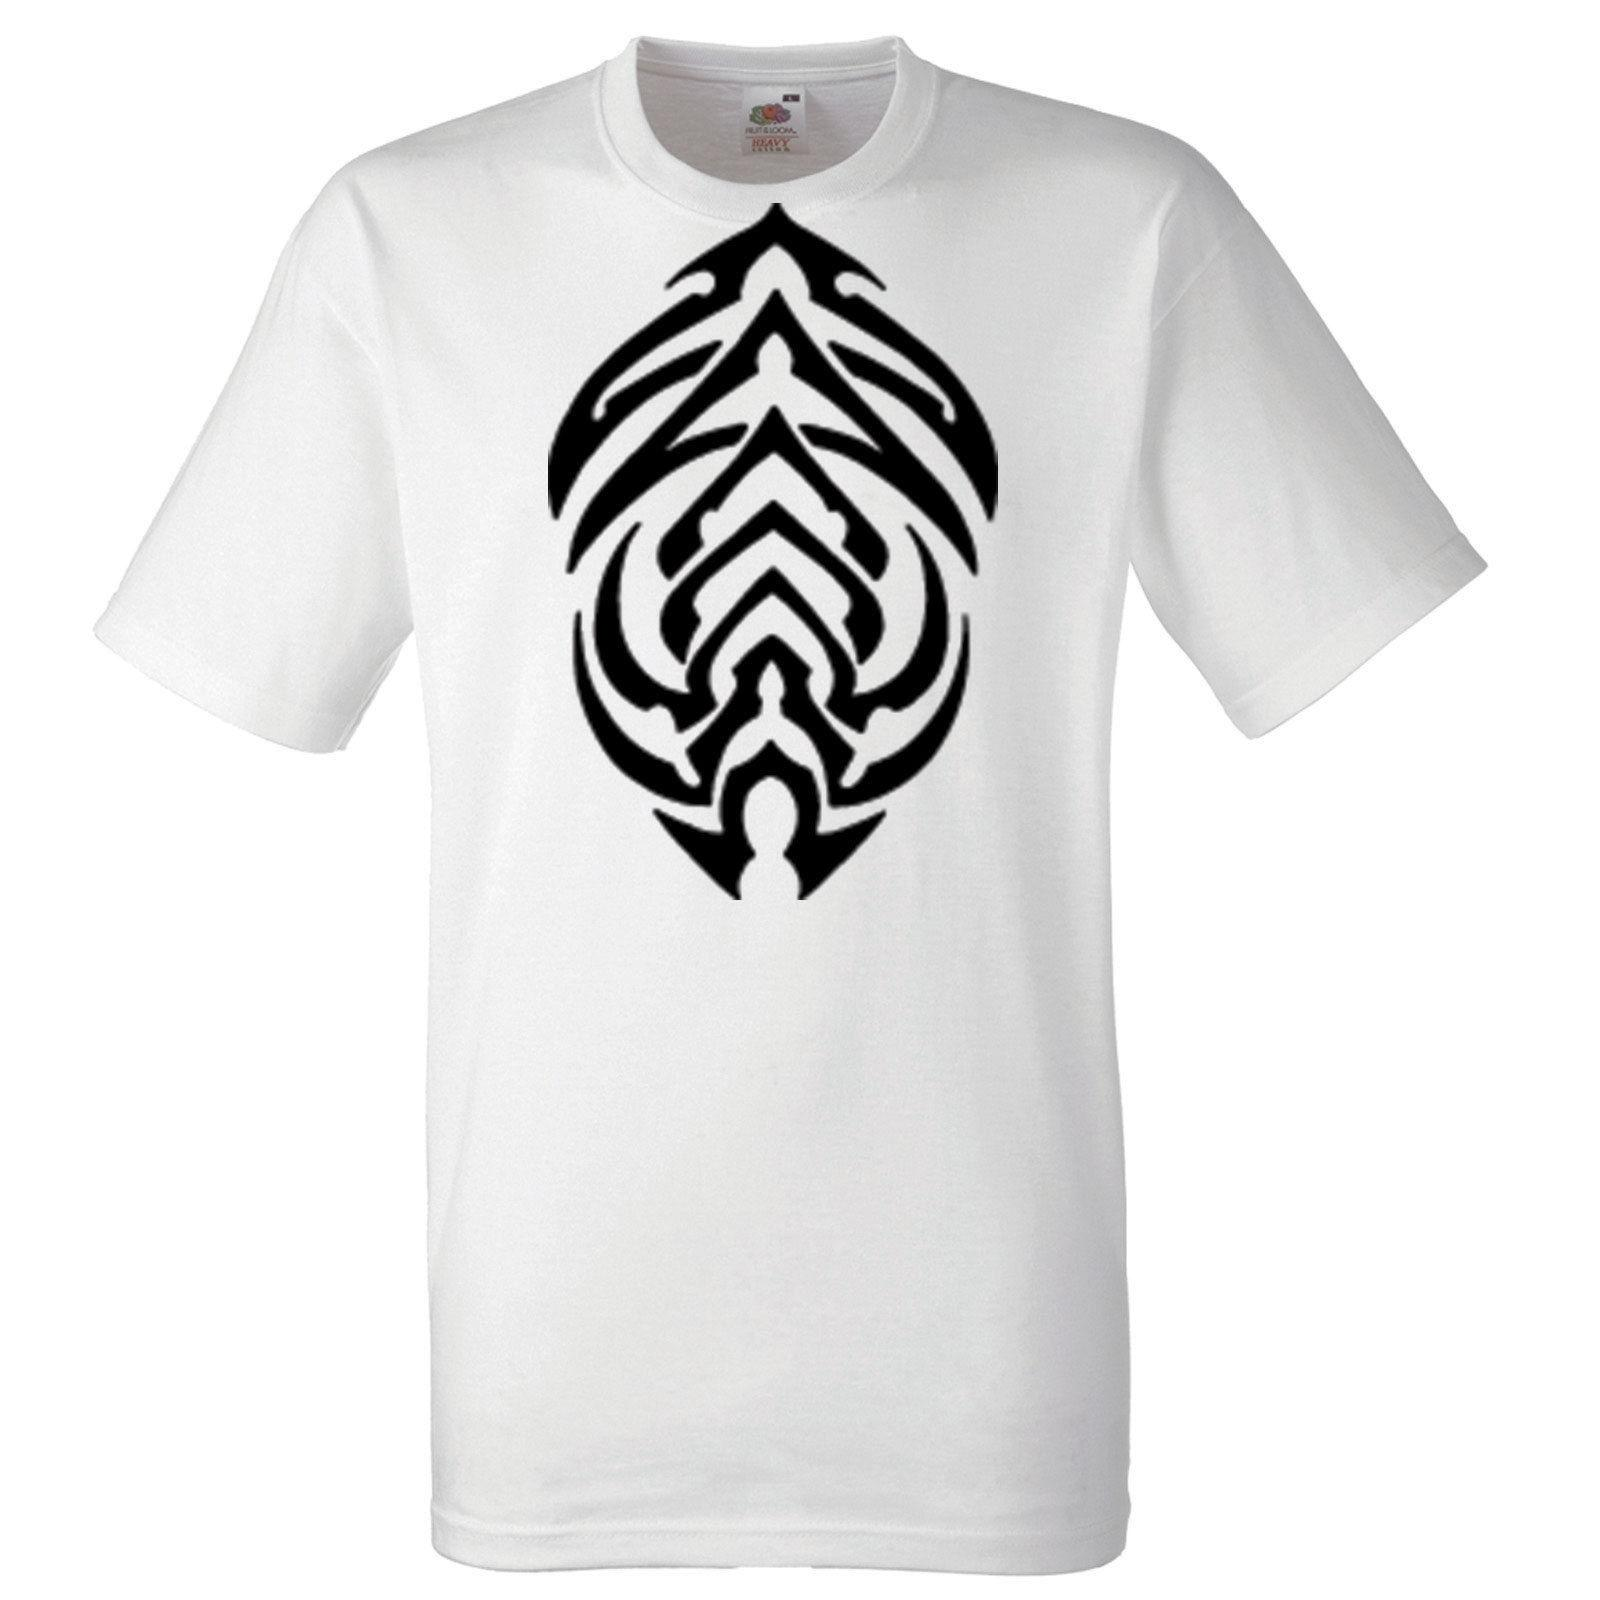 d0dd113d TRIBAL T SHIRT DESIGN SERIES TATTOO STYLE TEE WHITE SHIRT HIPSTER 2dis232  Awesome Shirt Designs Funny Slogan T Shirts From Tshirtemperor, $11.42   DHgate.Com